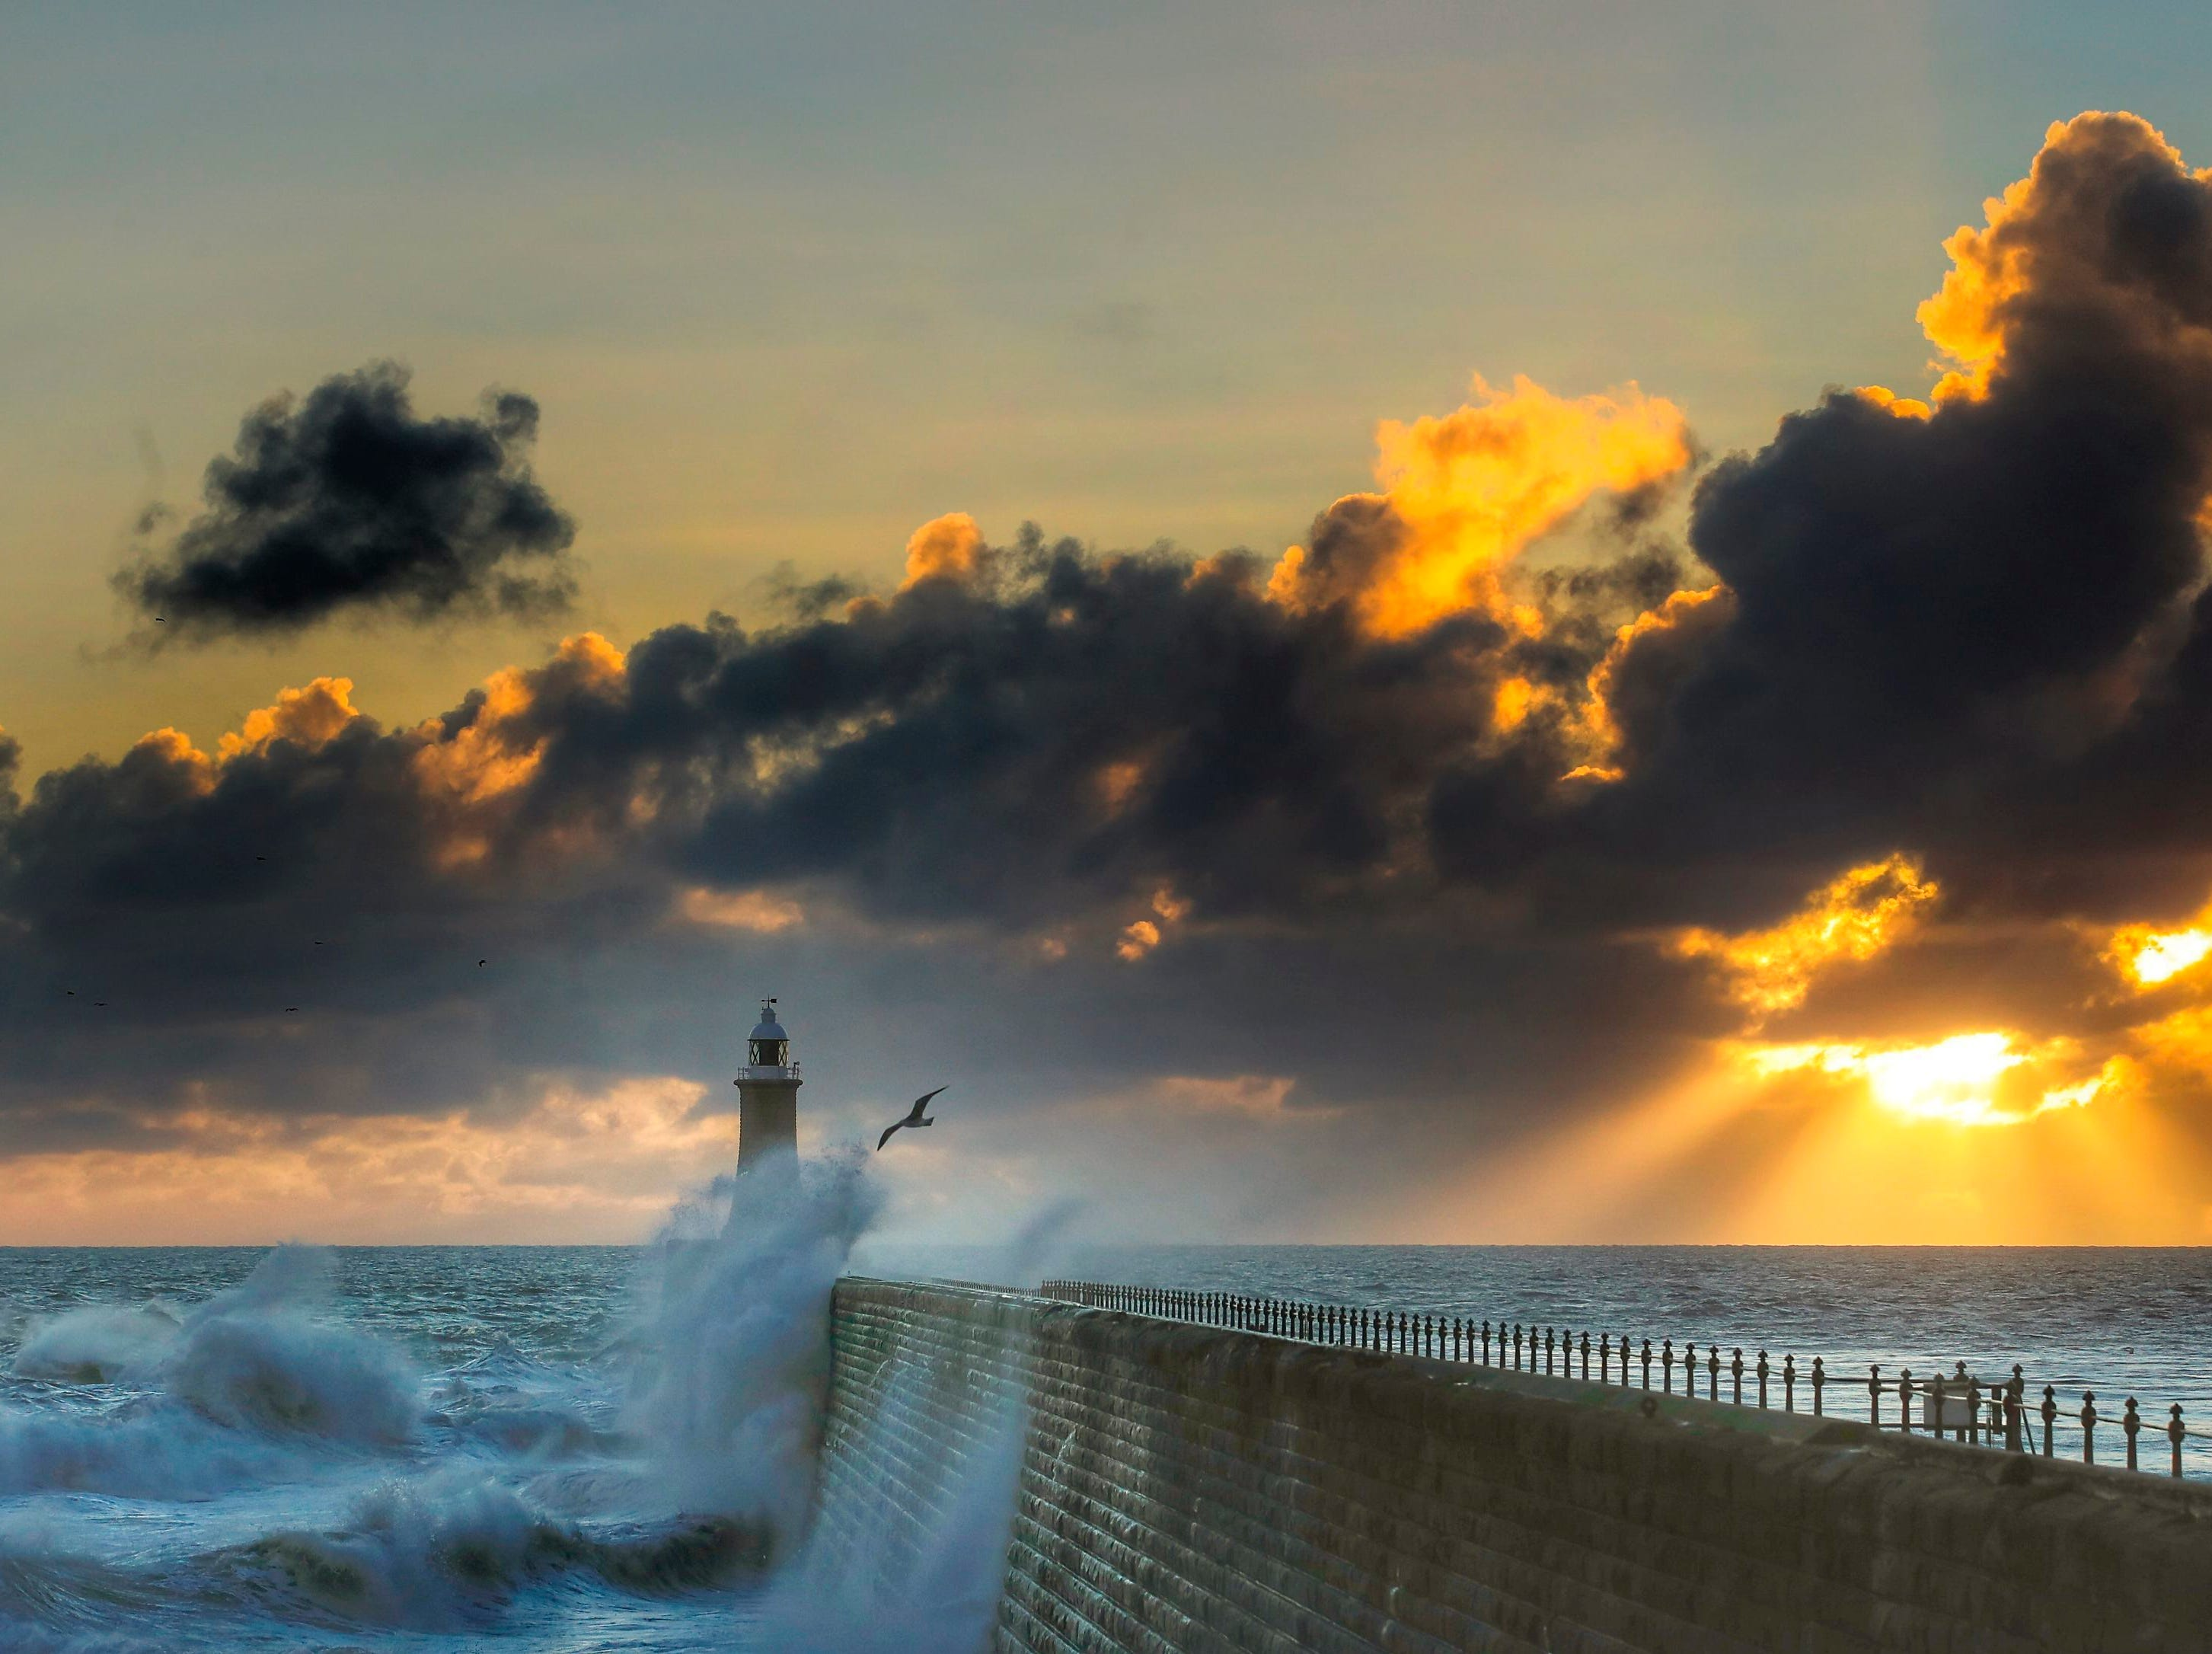 Rough seas are buffeted against Tynemouth Pier as the sun rises in Tynemouth, England, Sunday, Oct. 28, 2018.